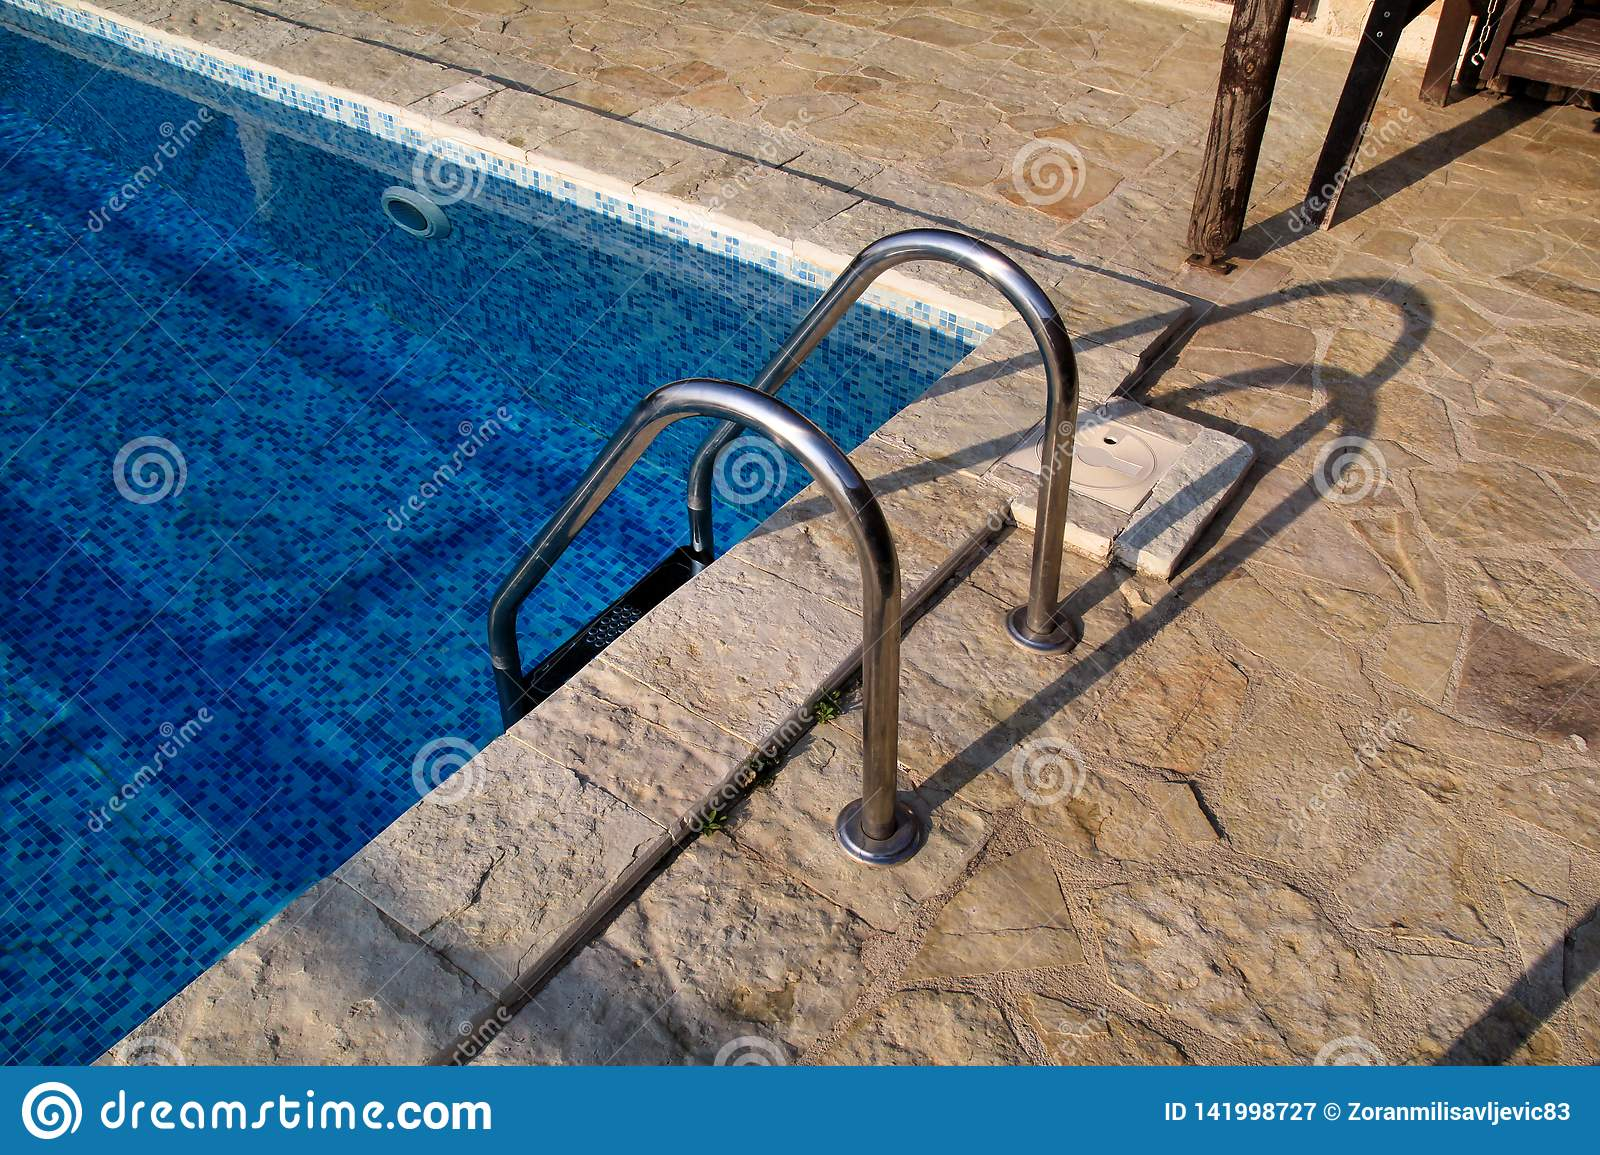 Handrail on pool. Swimming pool with stair at tropical resort. Pool handrails view. Water swimming pool with sunny reflection.